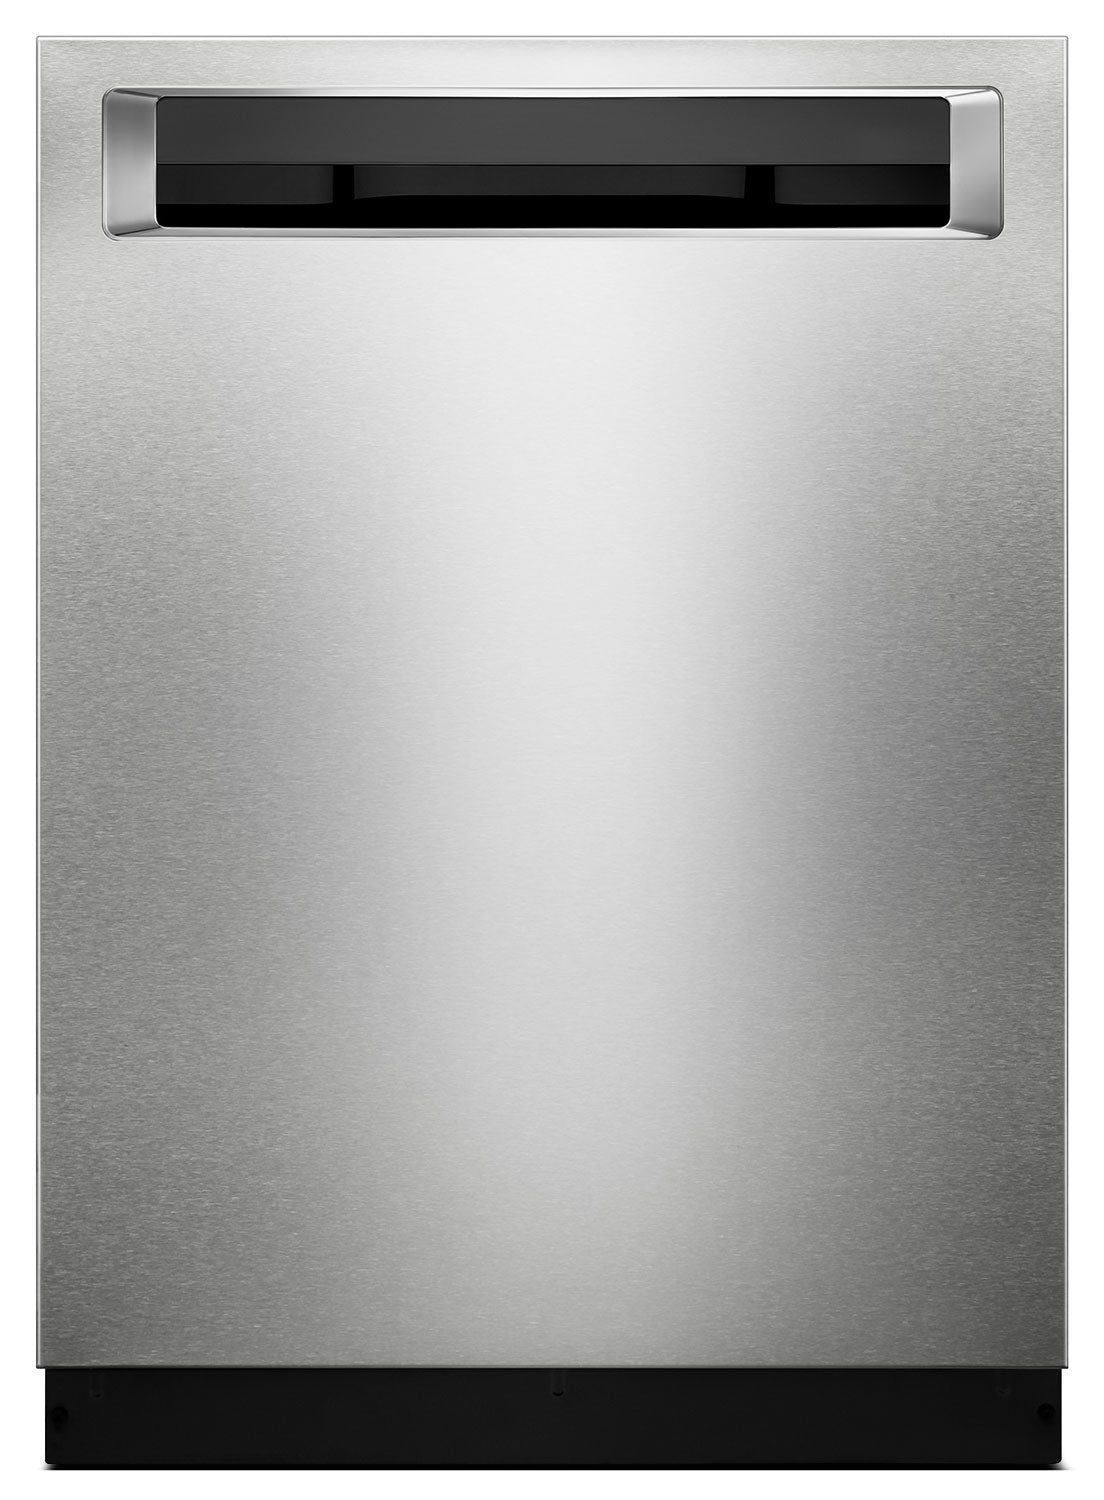 Kitchenaid Dishwasher With Clean Water Wash System And Printshield